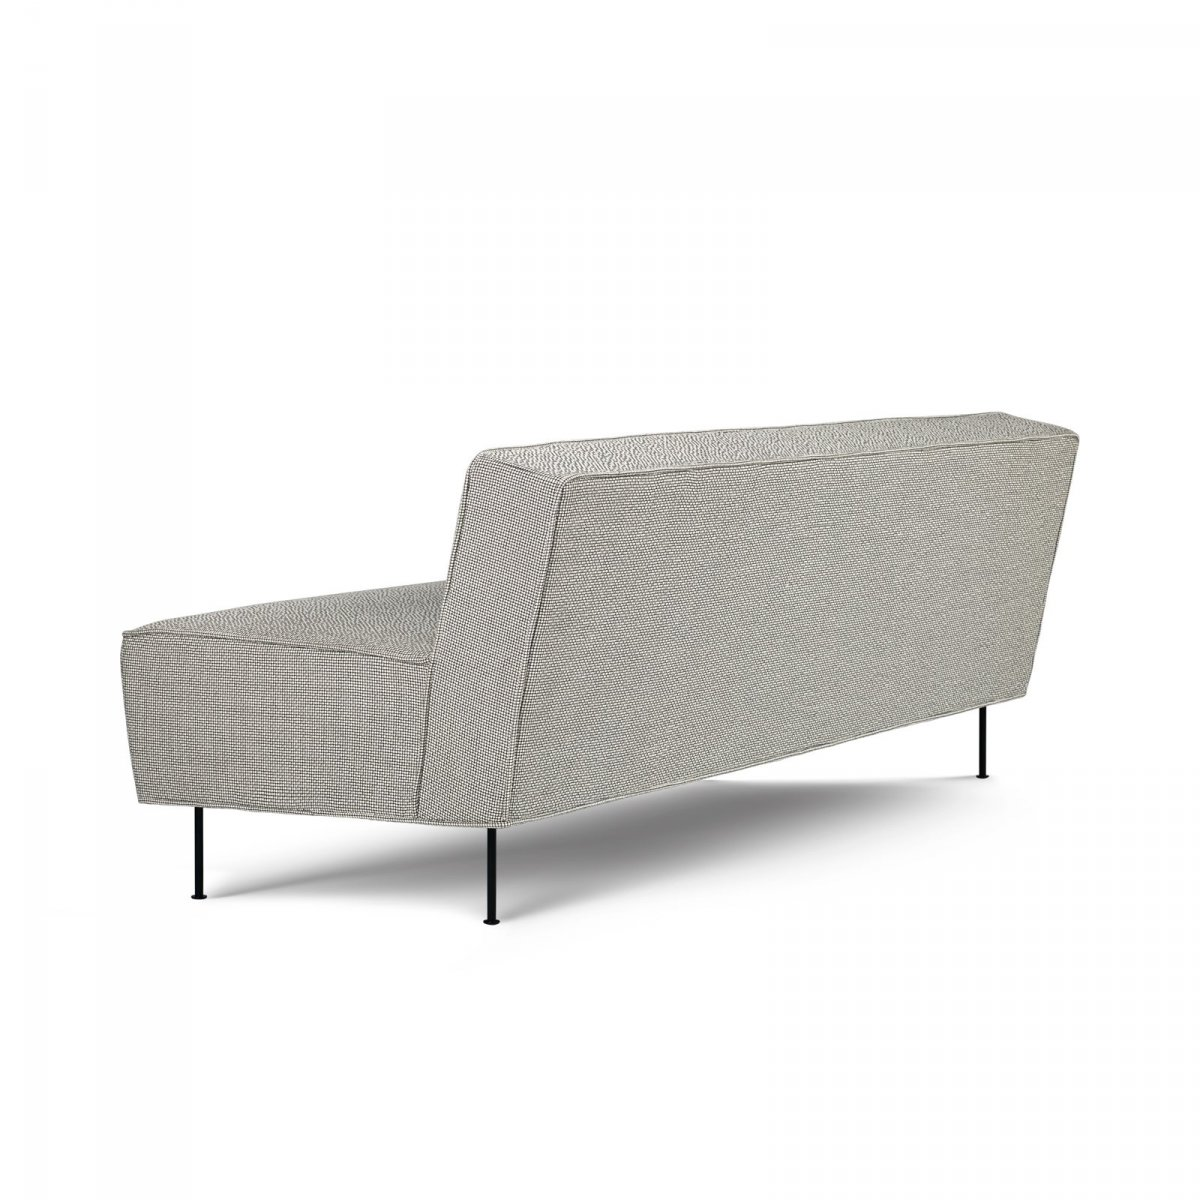 Modern Line 2-Seater Sofa, back view.